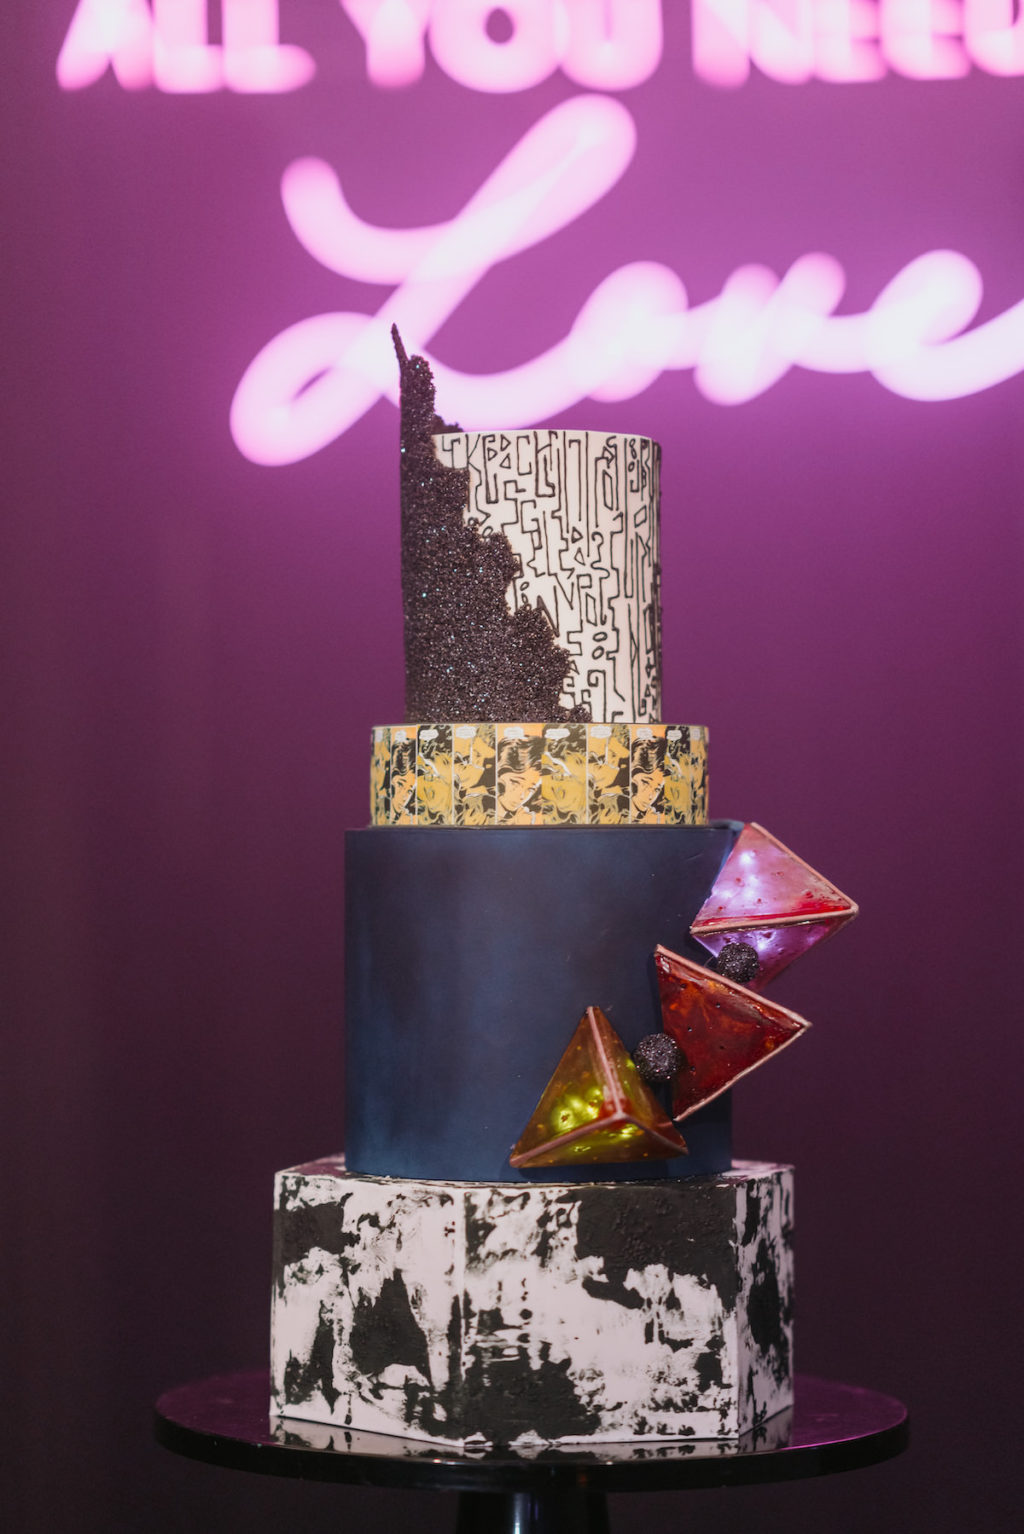 Unique Edgy and Urban Black, White, and Gold Round and Geometric Wedding Cake with Art Deco Inspo Design, Red 3D Geometric Triangles | Tampa Wedding Photographer Bonnie Newman Creative | Wedding Cake The Artistic Whisk | Wedding Designer and Planner UNIQUE Weddings + Events | Wedding Lighting Spark Weddings and Events